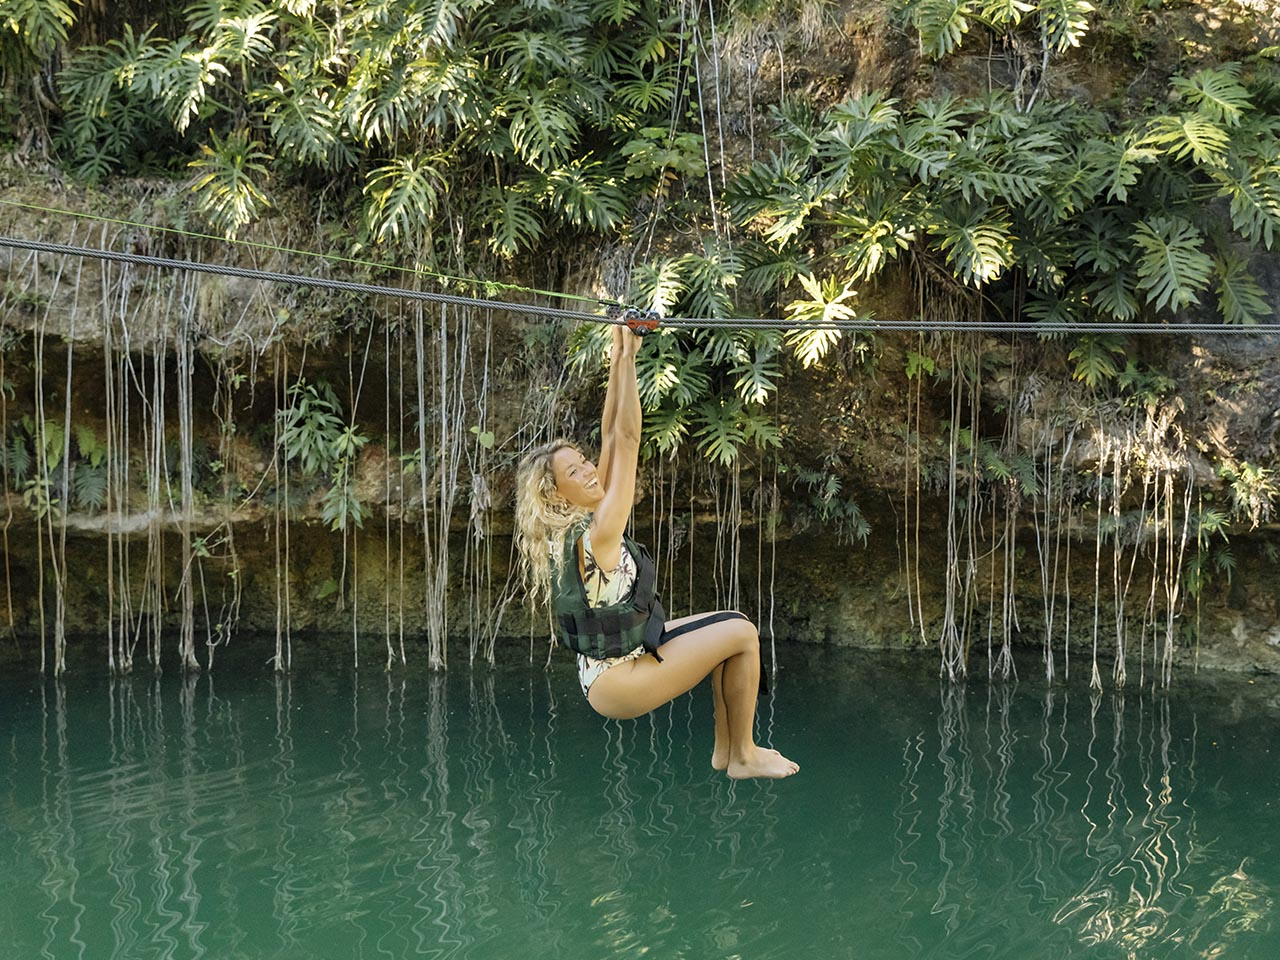 en.xcaretexperiencias.com - Spring Break at Xenotes